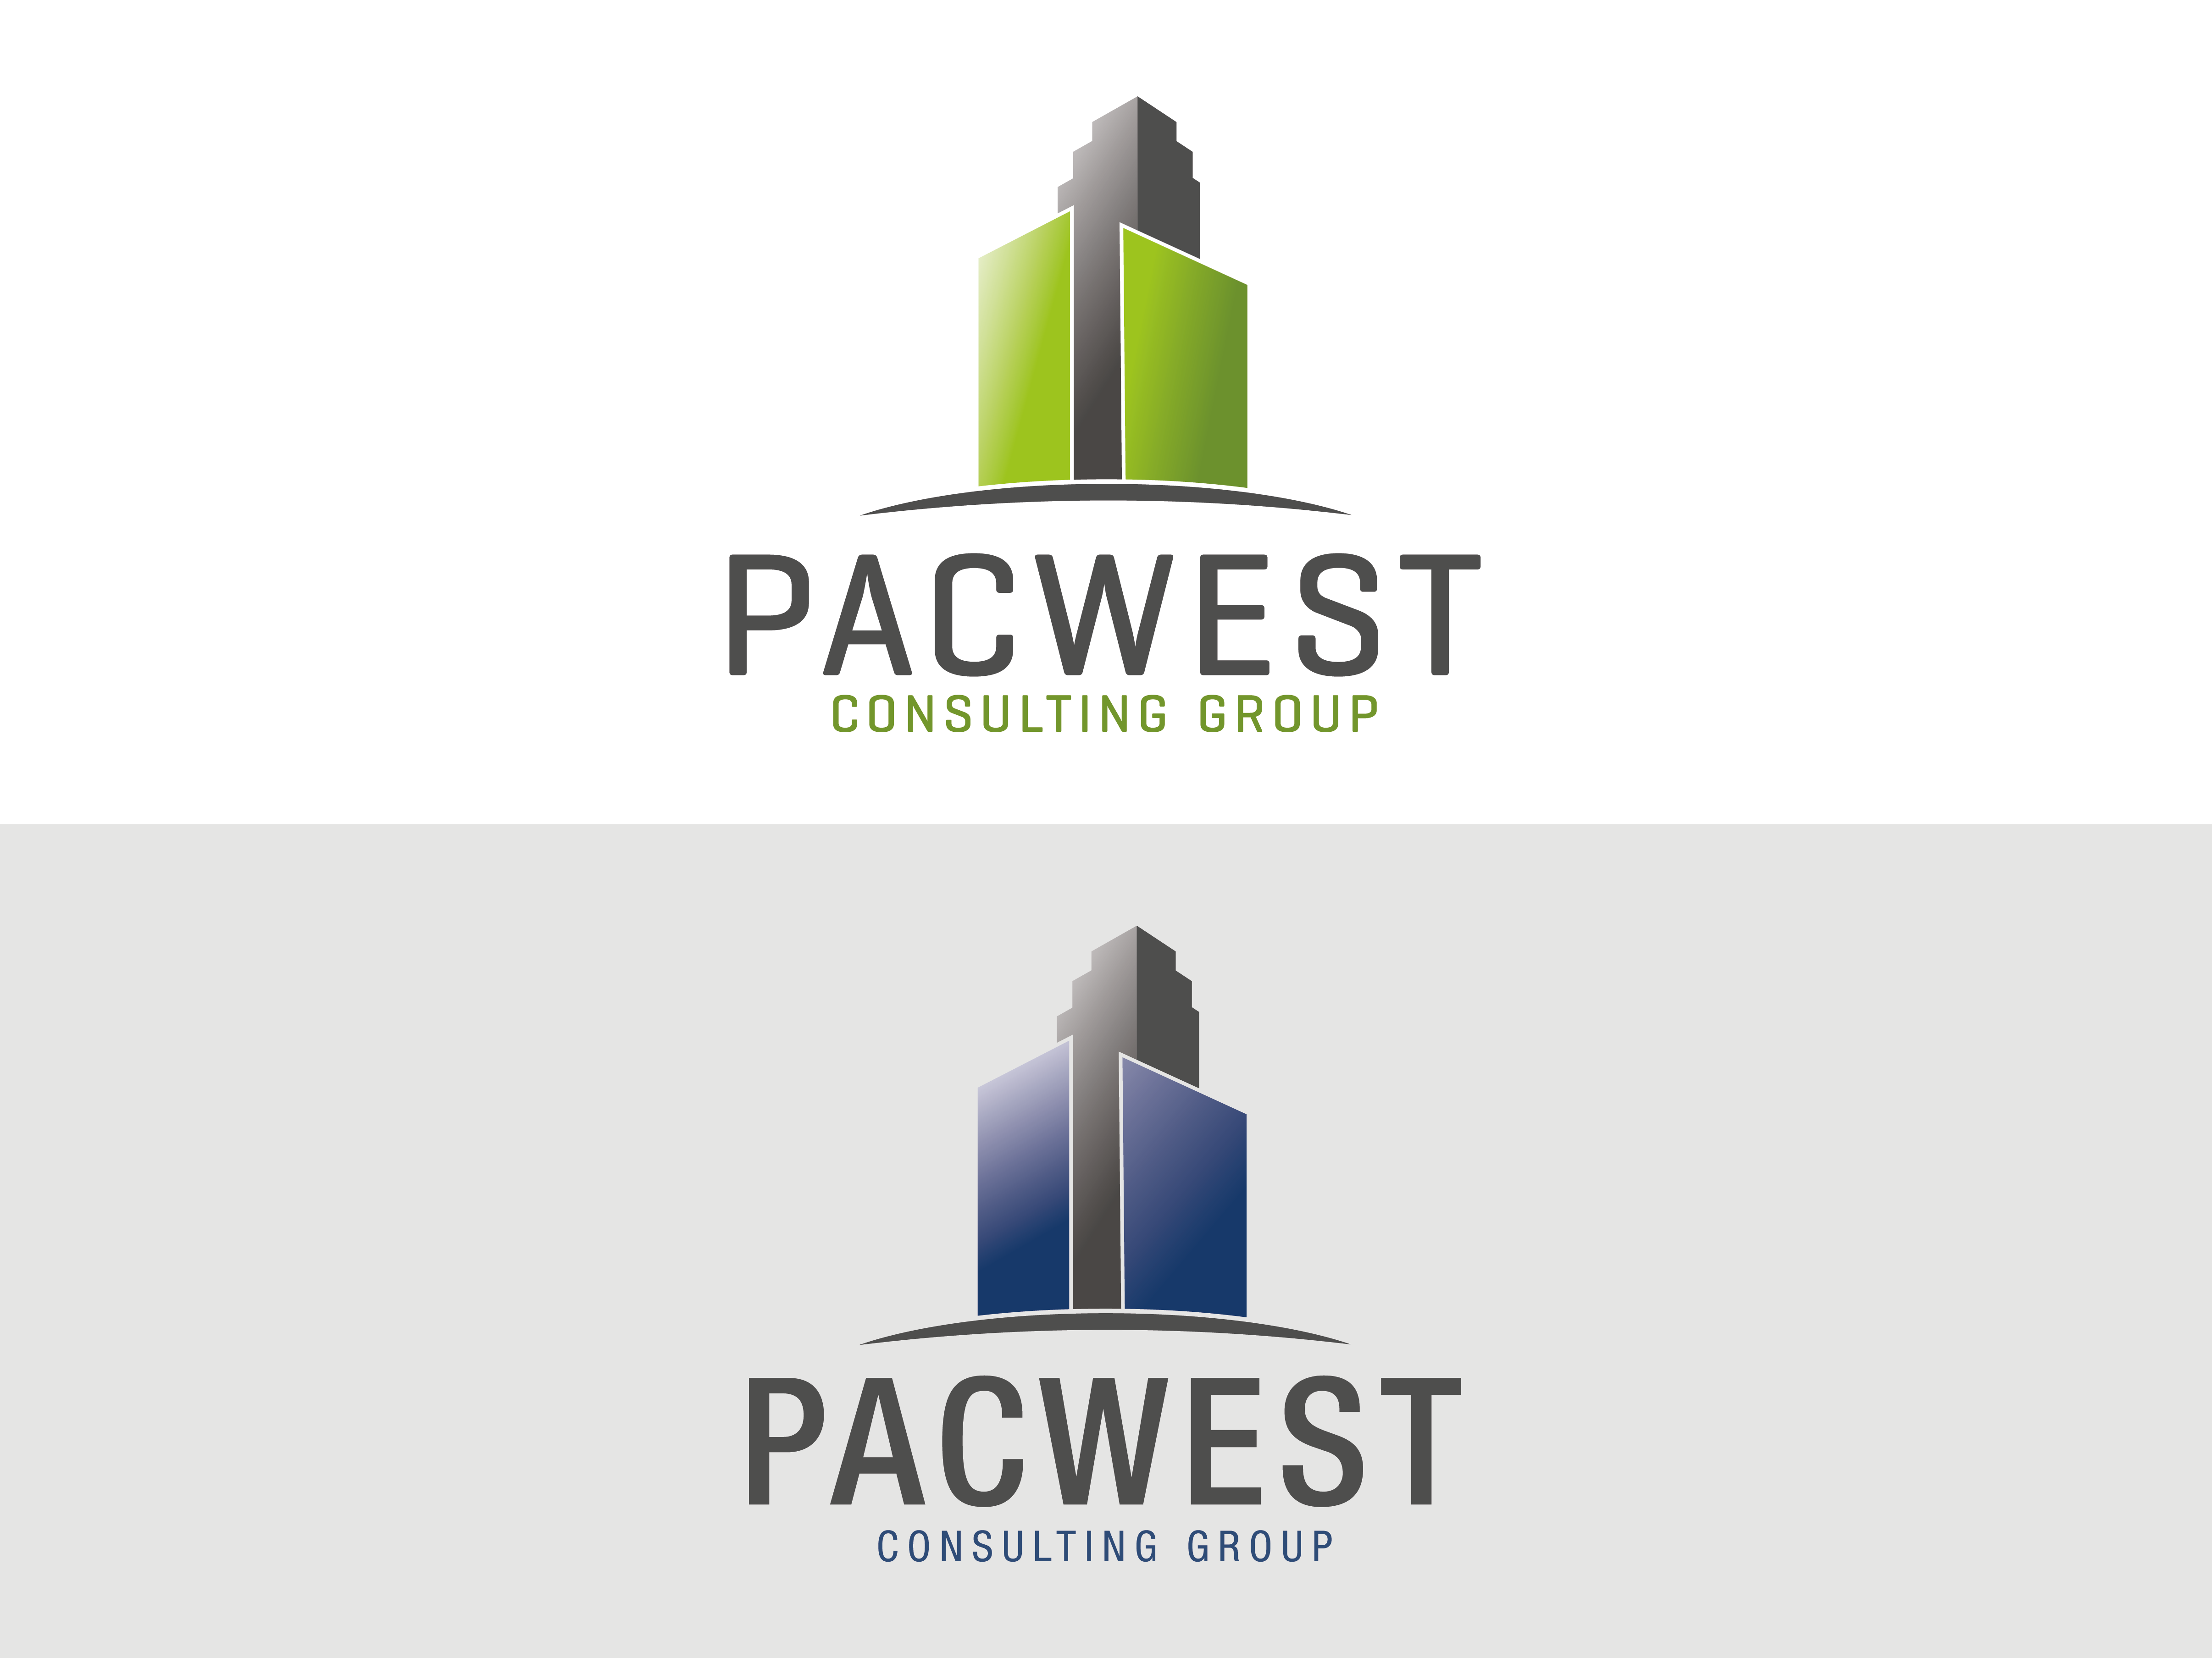 Logo Design by Evo-design - Entry No. 80 in the Logo Design Contest Imaginative Logo Design for Pacwest Consulting Group.